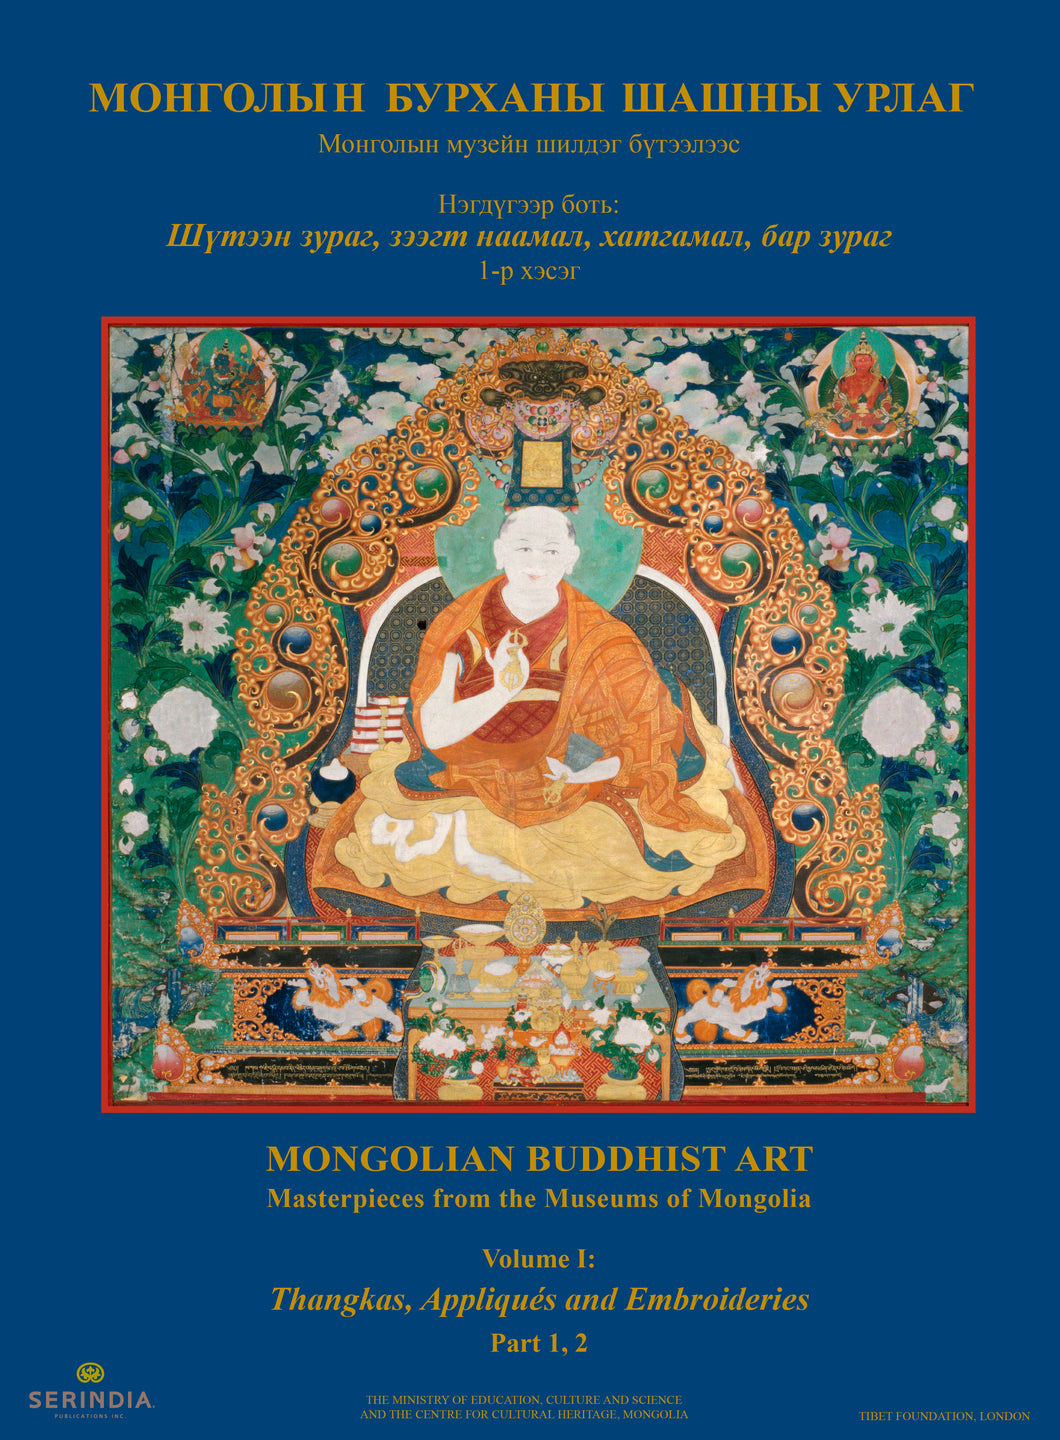 MONGOLIAN BUDDHIST ART: Masterpieces from the Museums of Mongolia Volume I, Part 1 & 2: Thangkas, Embroideries, and Appliqués (Two-Volume Set) by Center for Cultural Heritage of Mongolia